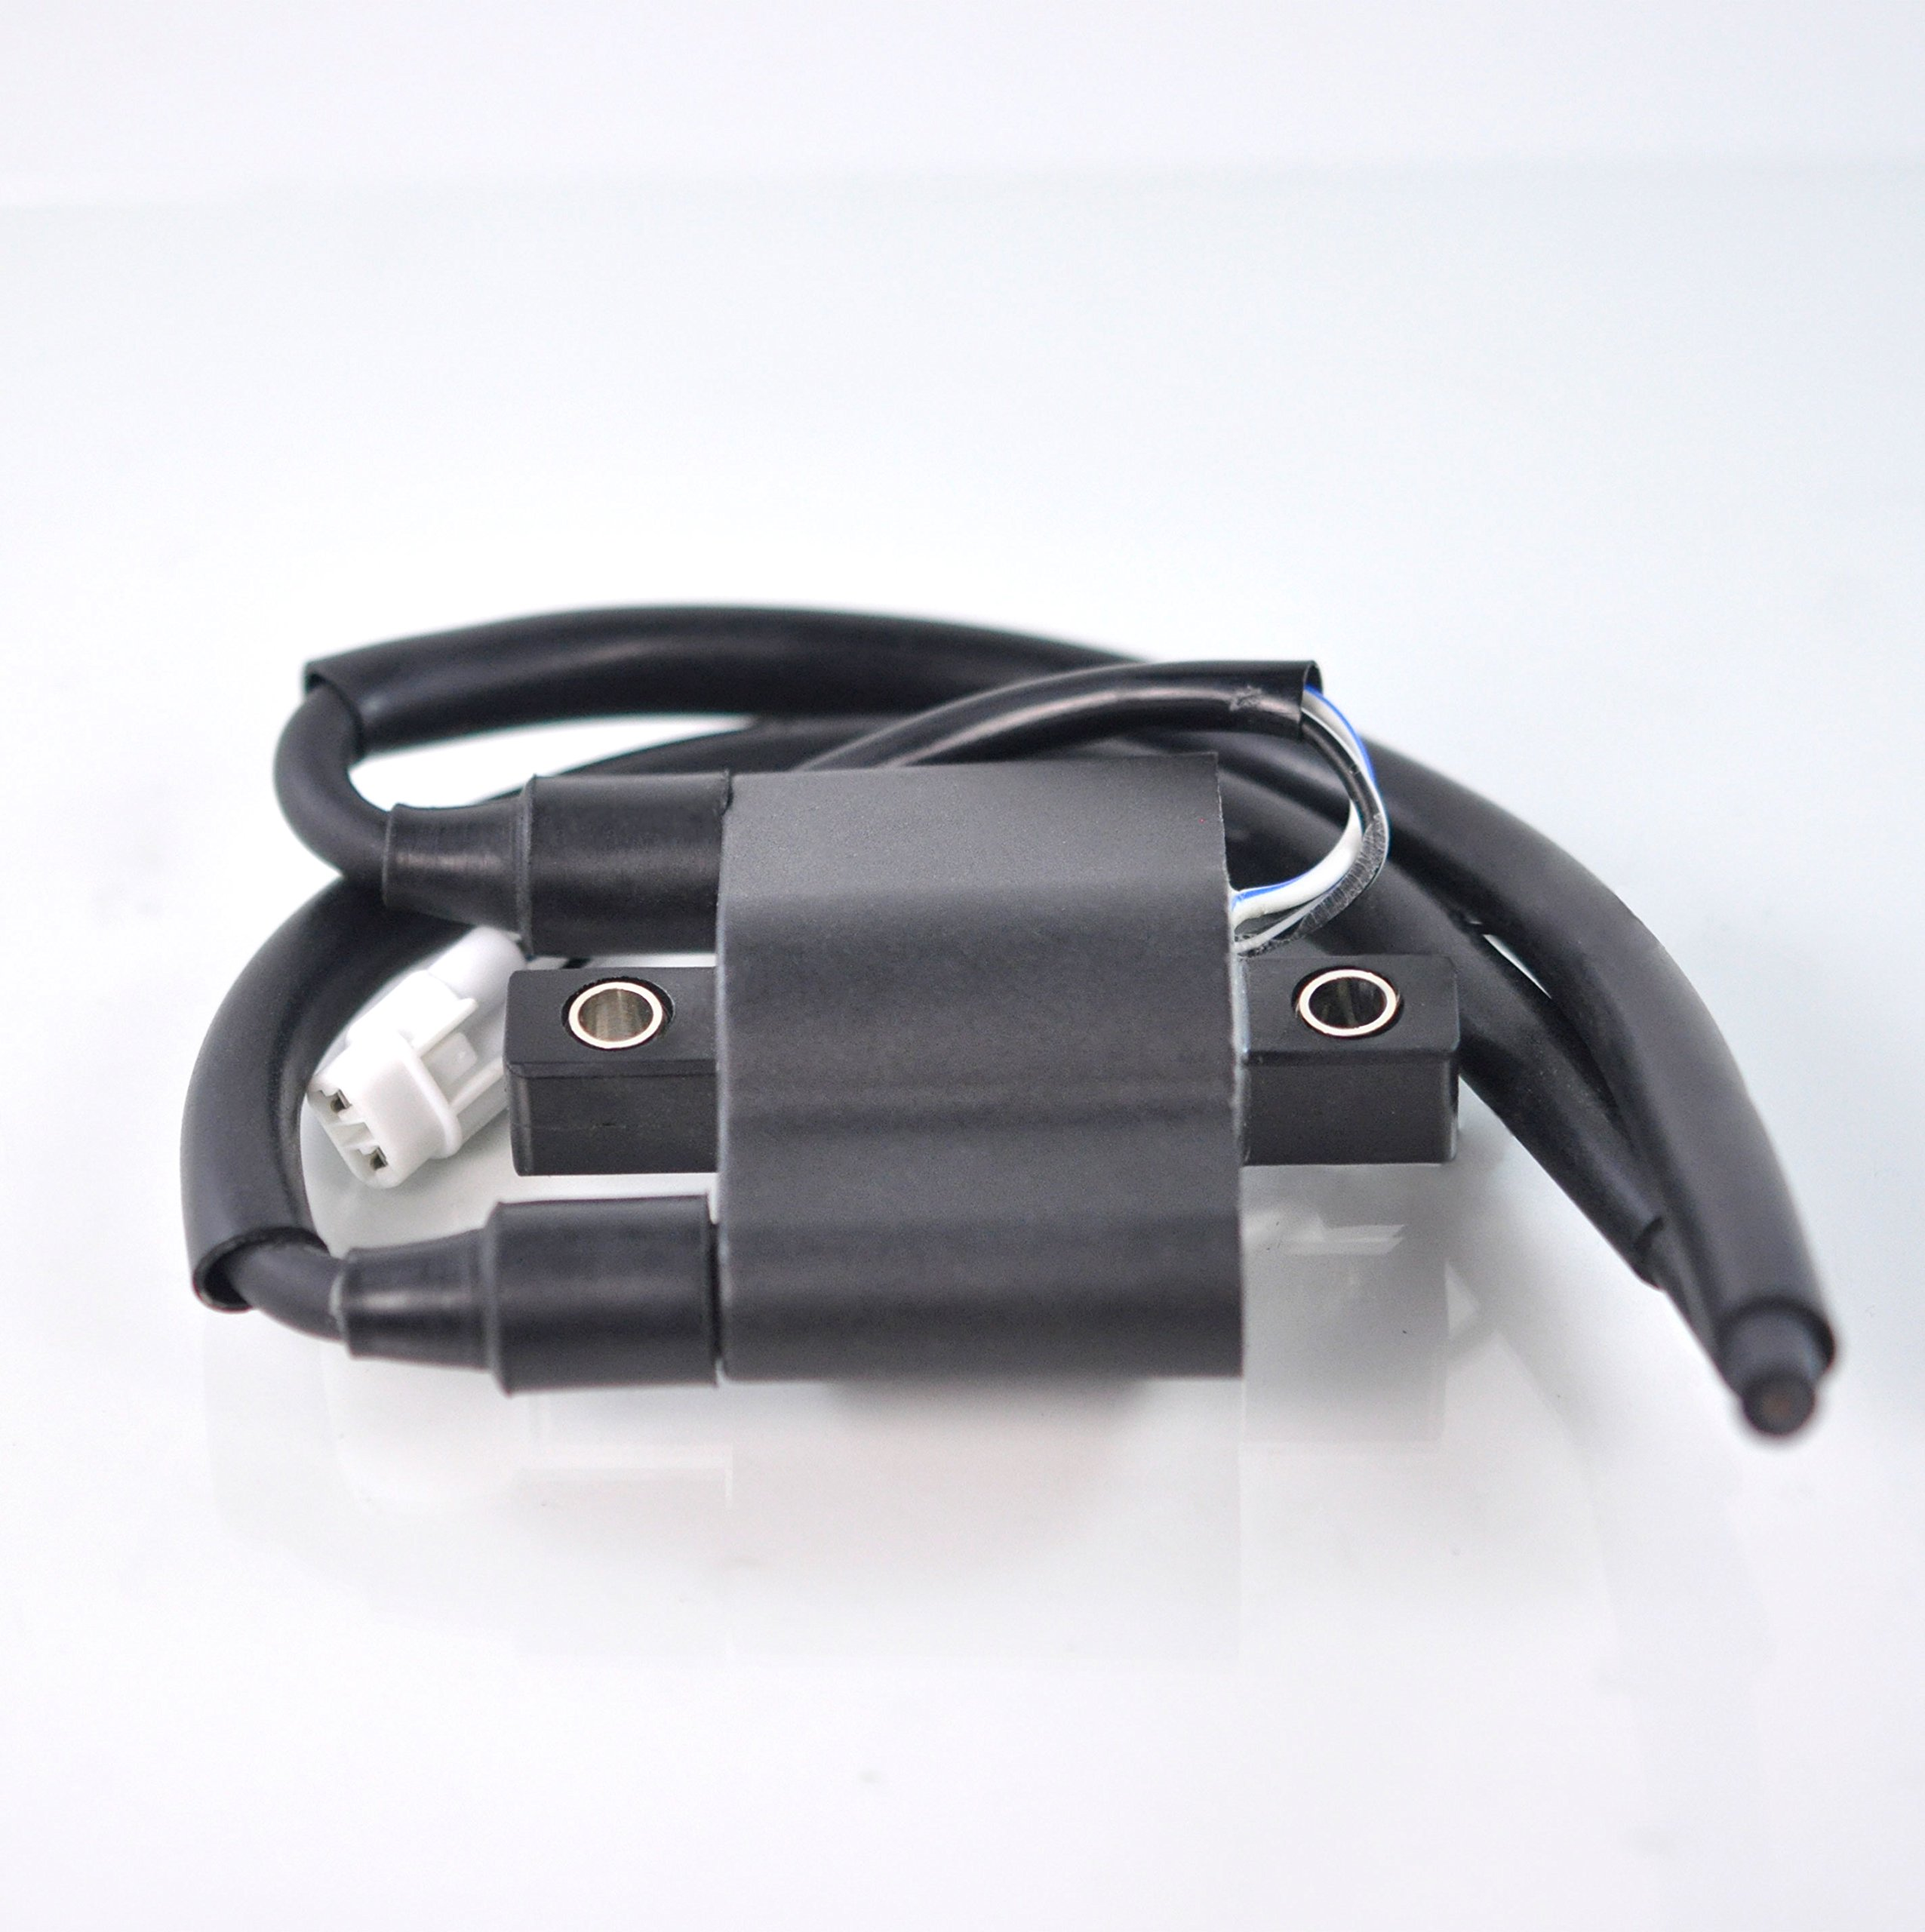 External Ignition Coil For Arctic Cat Crossfire / F5 / F6 / M6 / Sno Pro / ZR 500 600 2007 2008 2009 2010 2011 2012 2013 2014 OEM Repl.# 3007-451